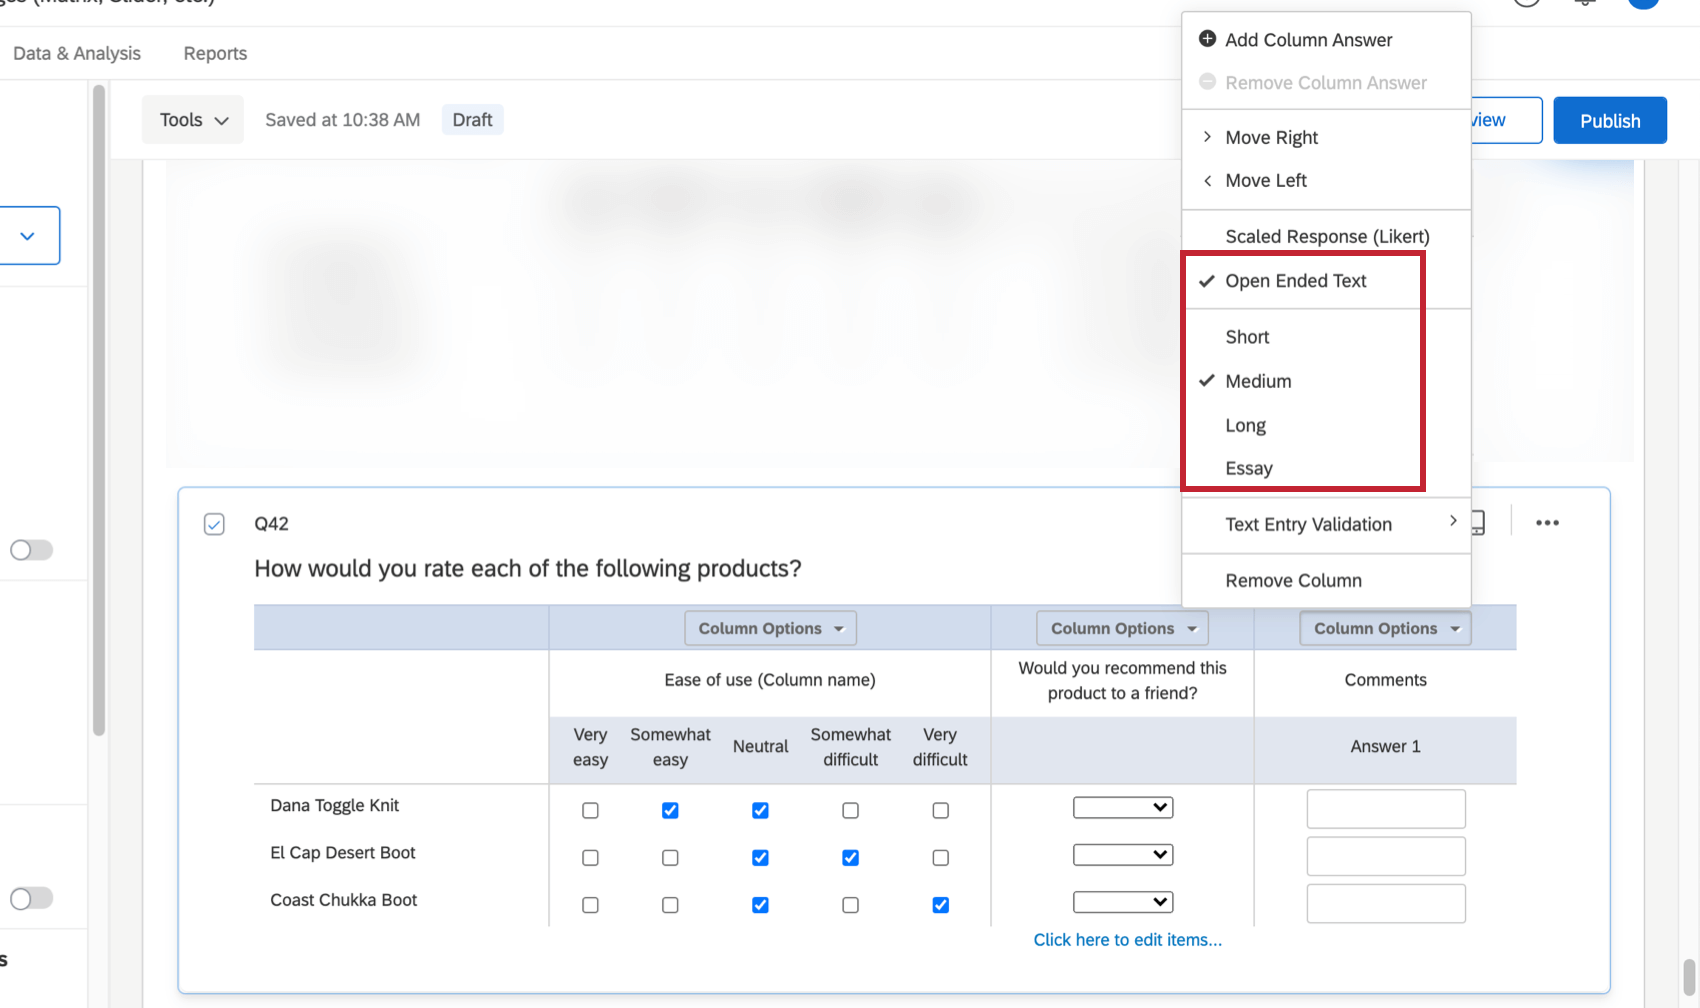 Open ended text is selected from column options, and from there the length of the open ended field can be selected